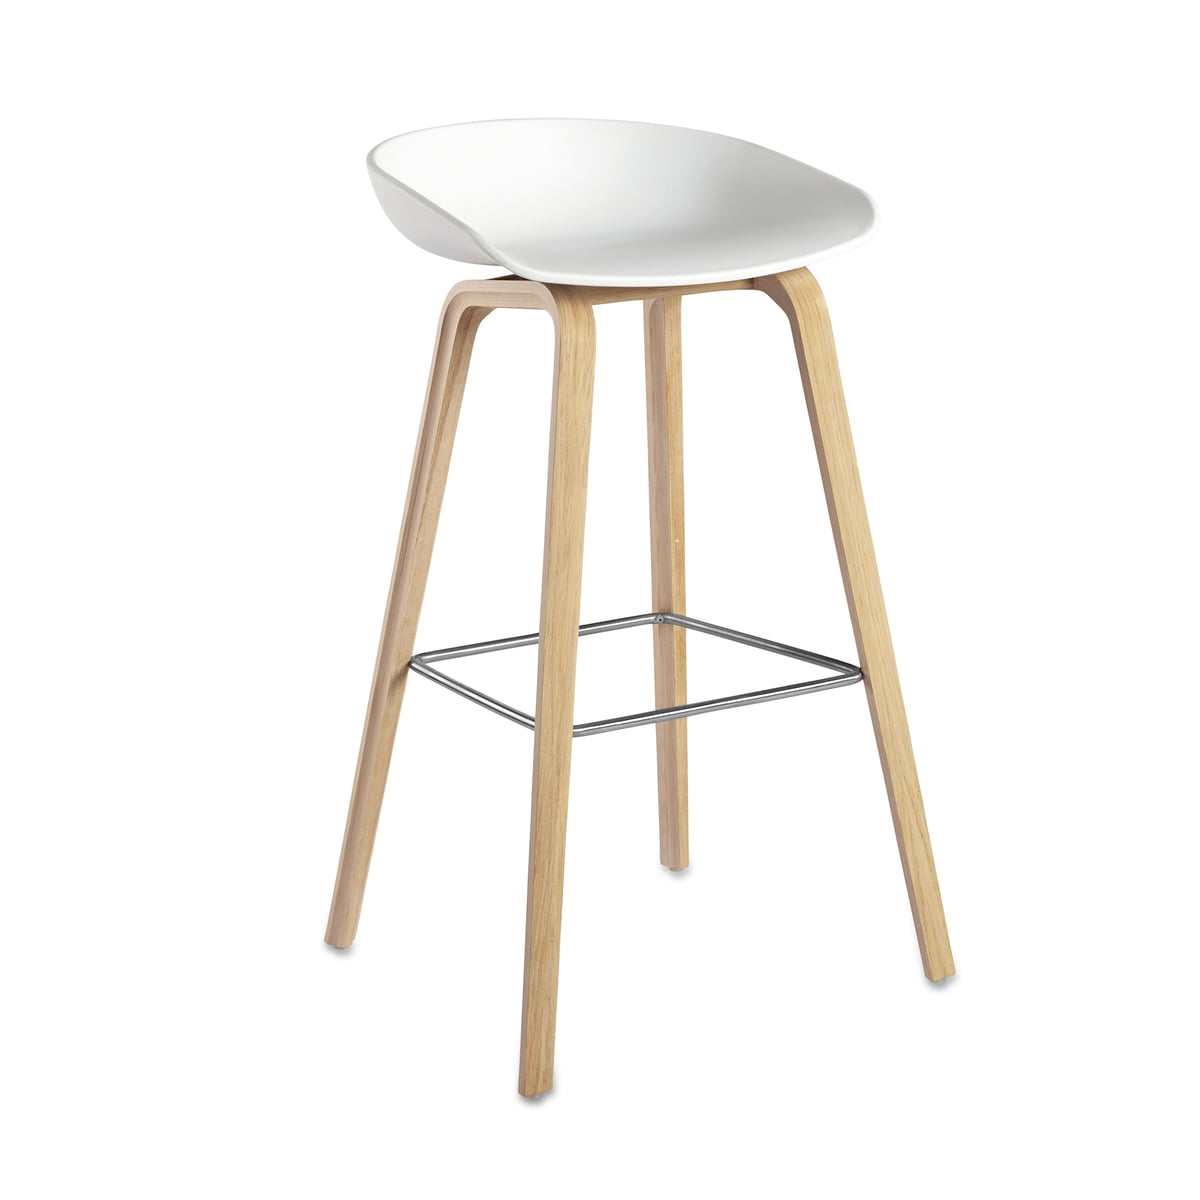 About A Stool AAS 32 by Hay Connox Shop : About a stool oak base white 75 from www.connox.com size 1200 x 1200 jpeg 77kB